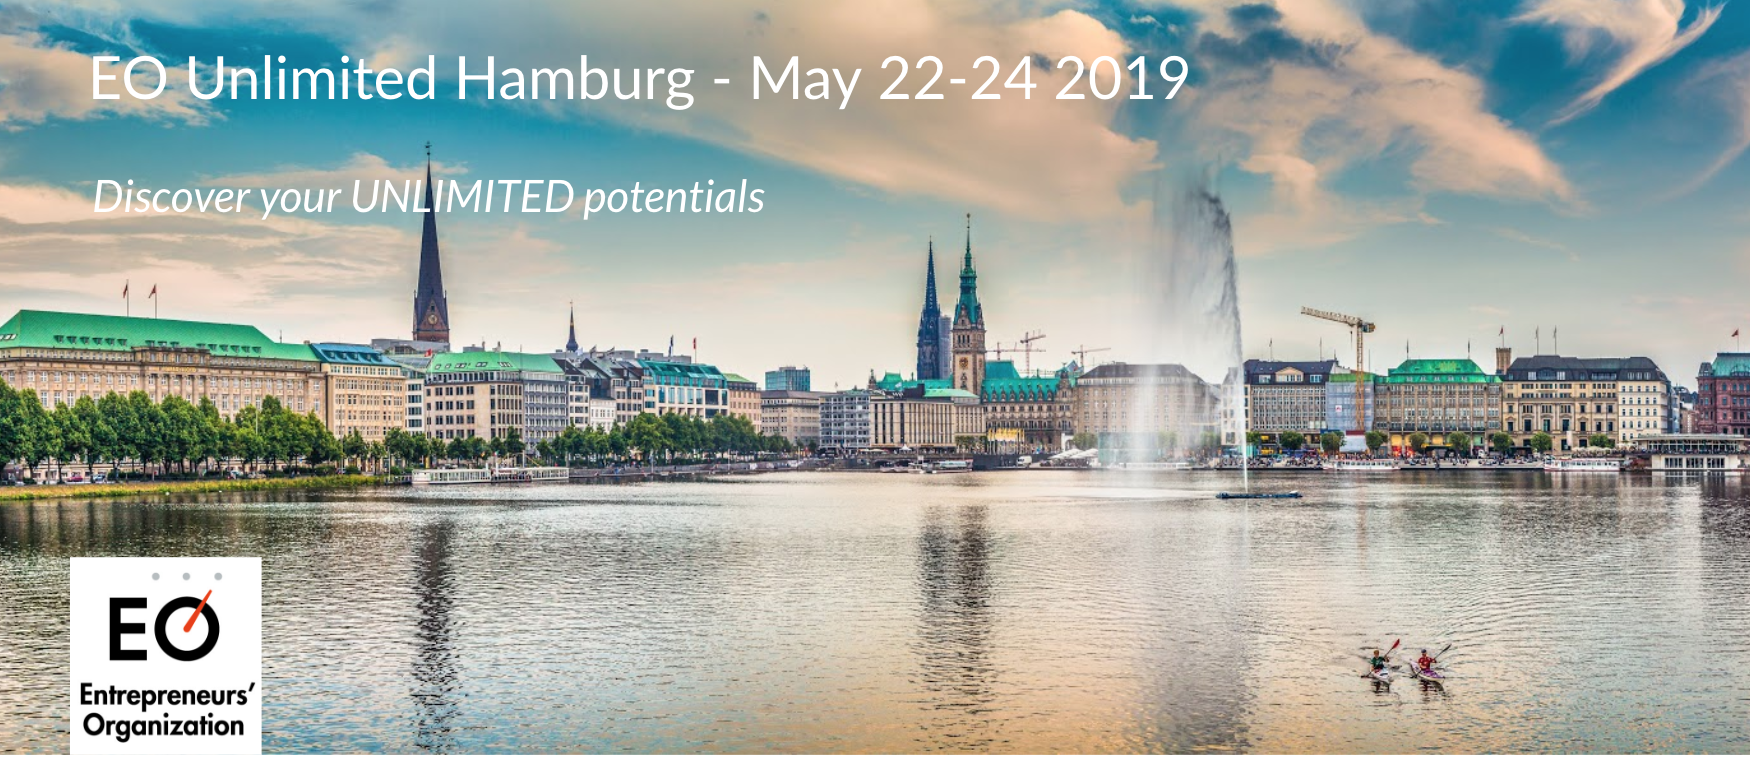 2019 EO Unlimited Hamburg